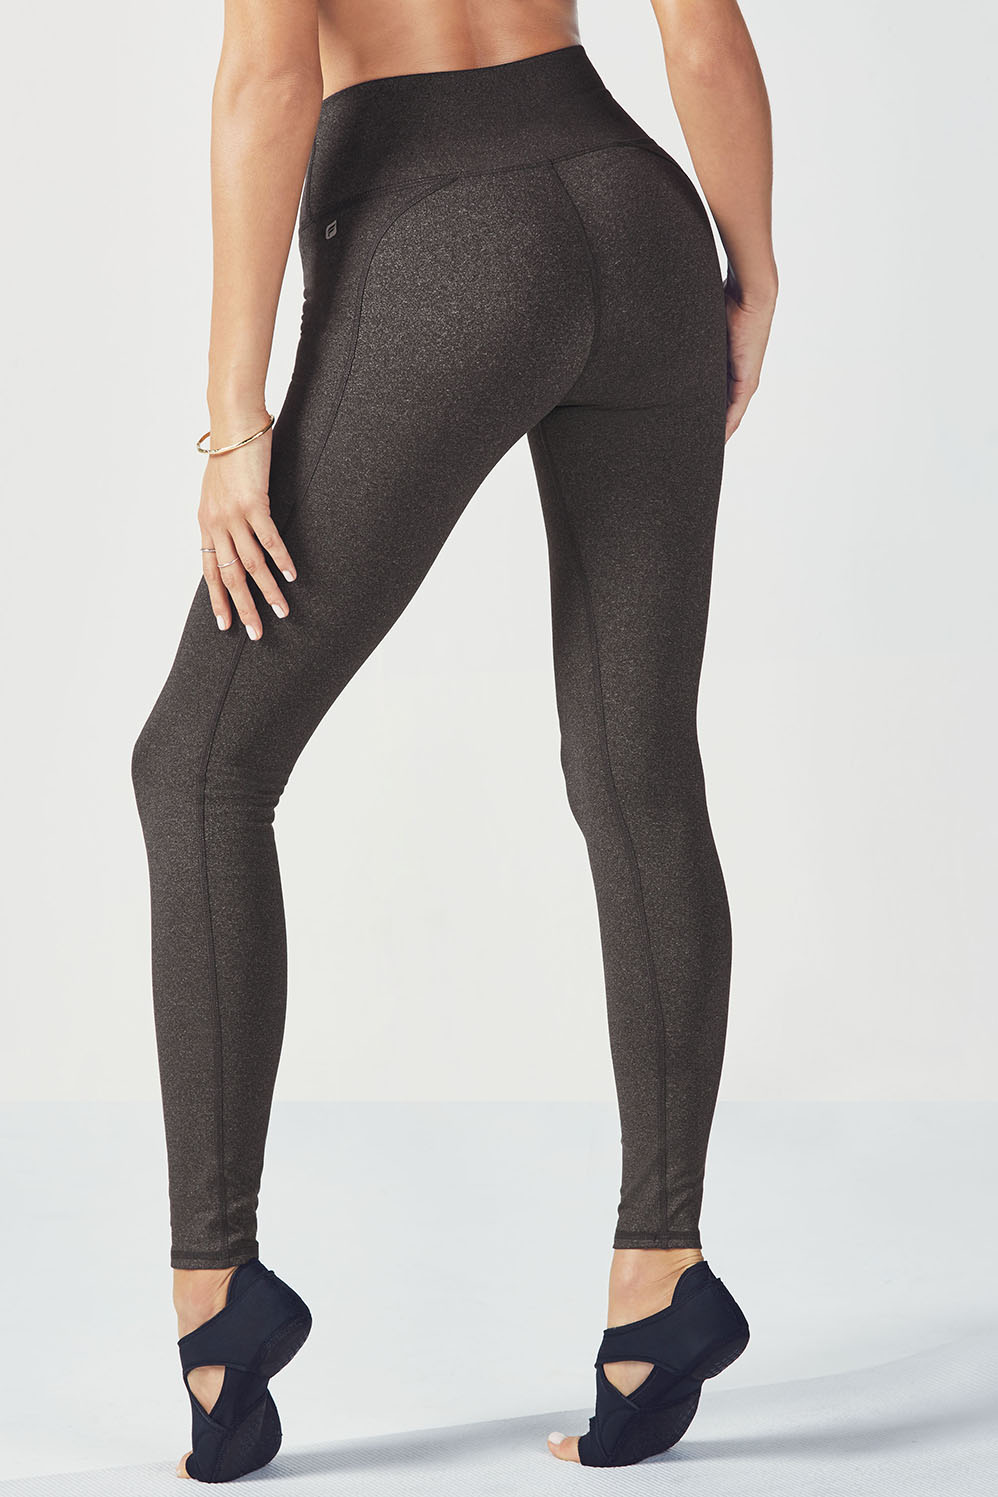 8d44bed4f4aa6 High-Waisted Solid PowerHold® Legging - Charcoal Heather